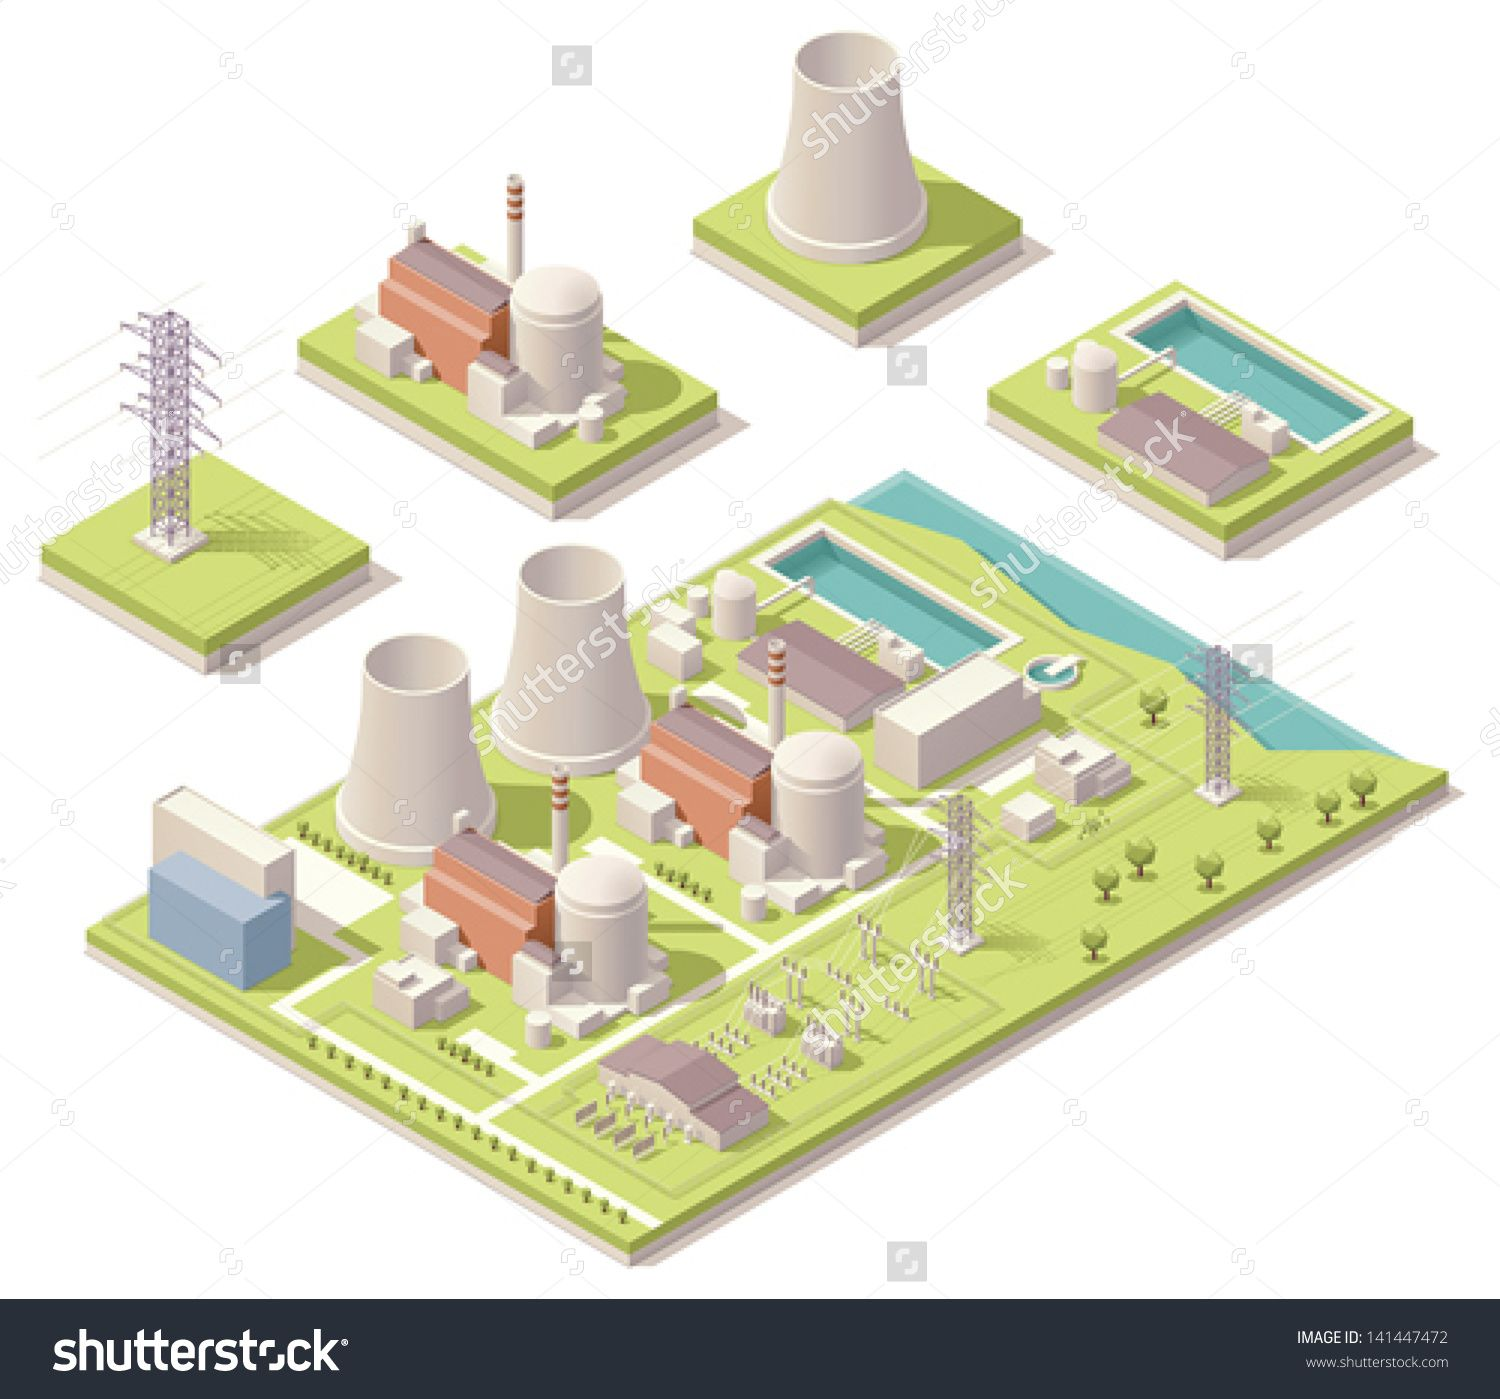 Vector Isometric Nuclear Power Station Pinterest Plant Schematic Minecraft